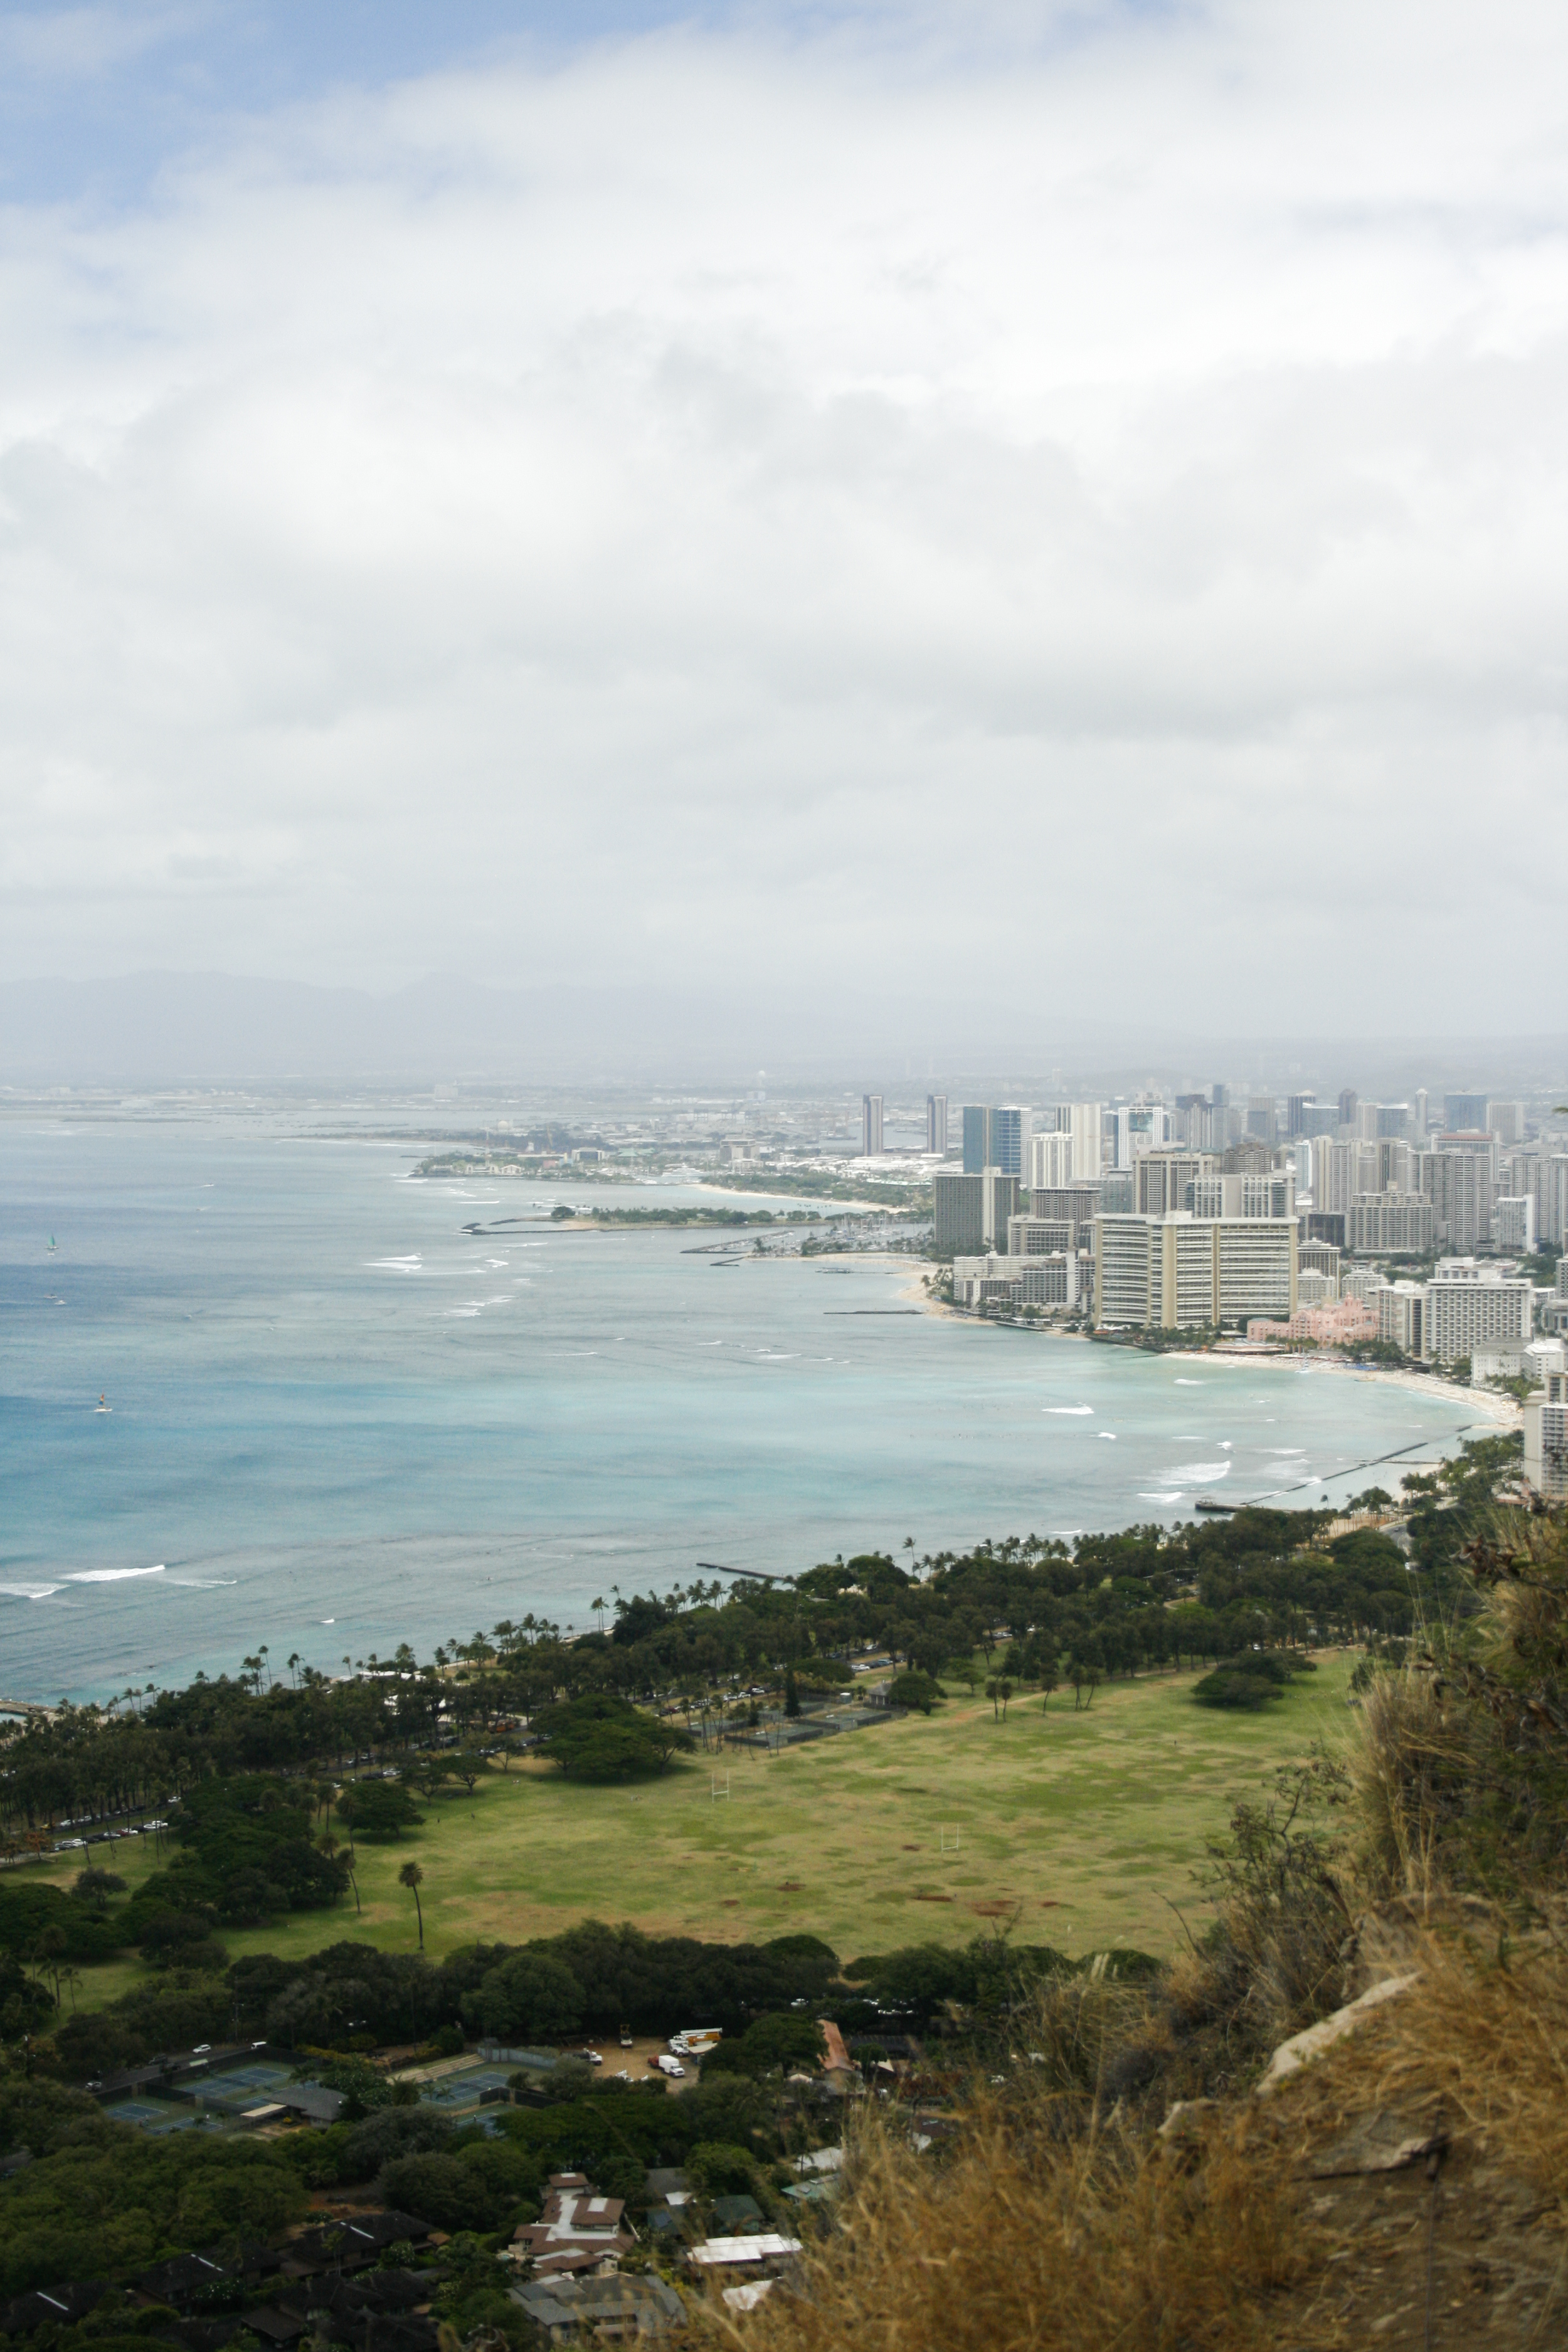 The view of Waikiki Beach from the top of Diamond Head Crater. You can vaguely see our hotel to the right of the pink hotel. It was once an active volcano!